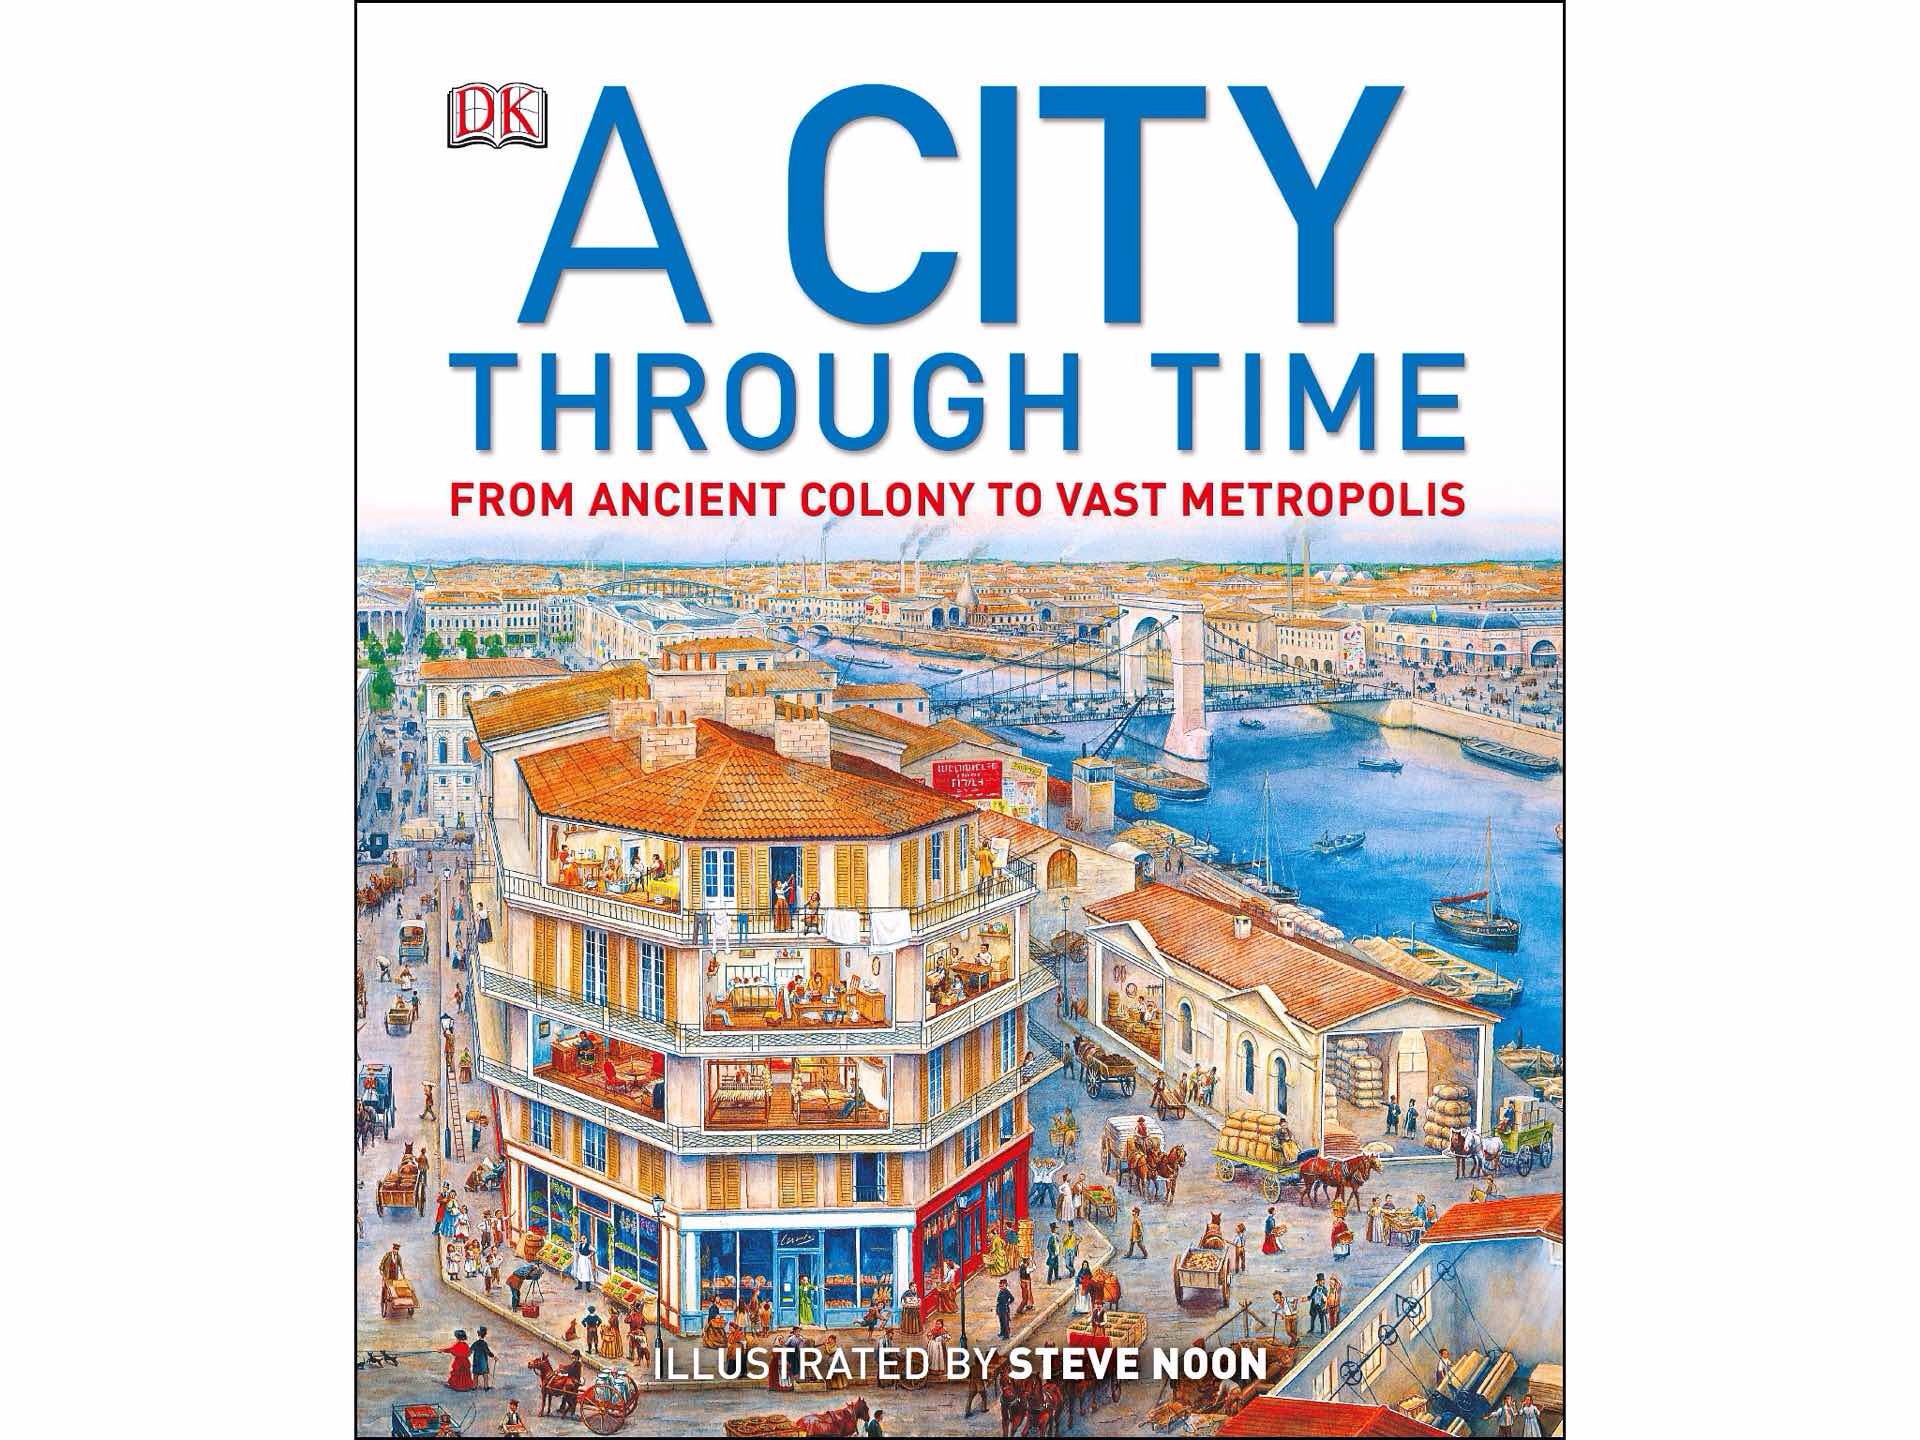 A City Through Time by Philip Steele and Steve Noon.